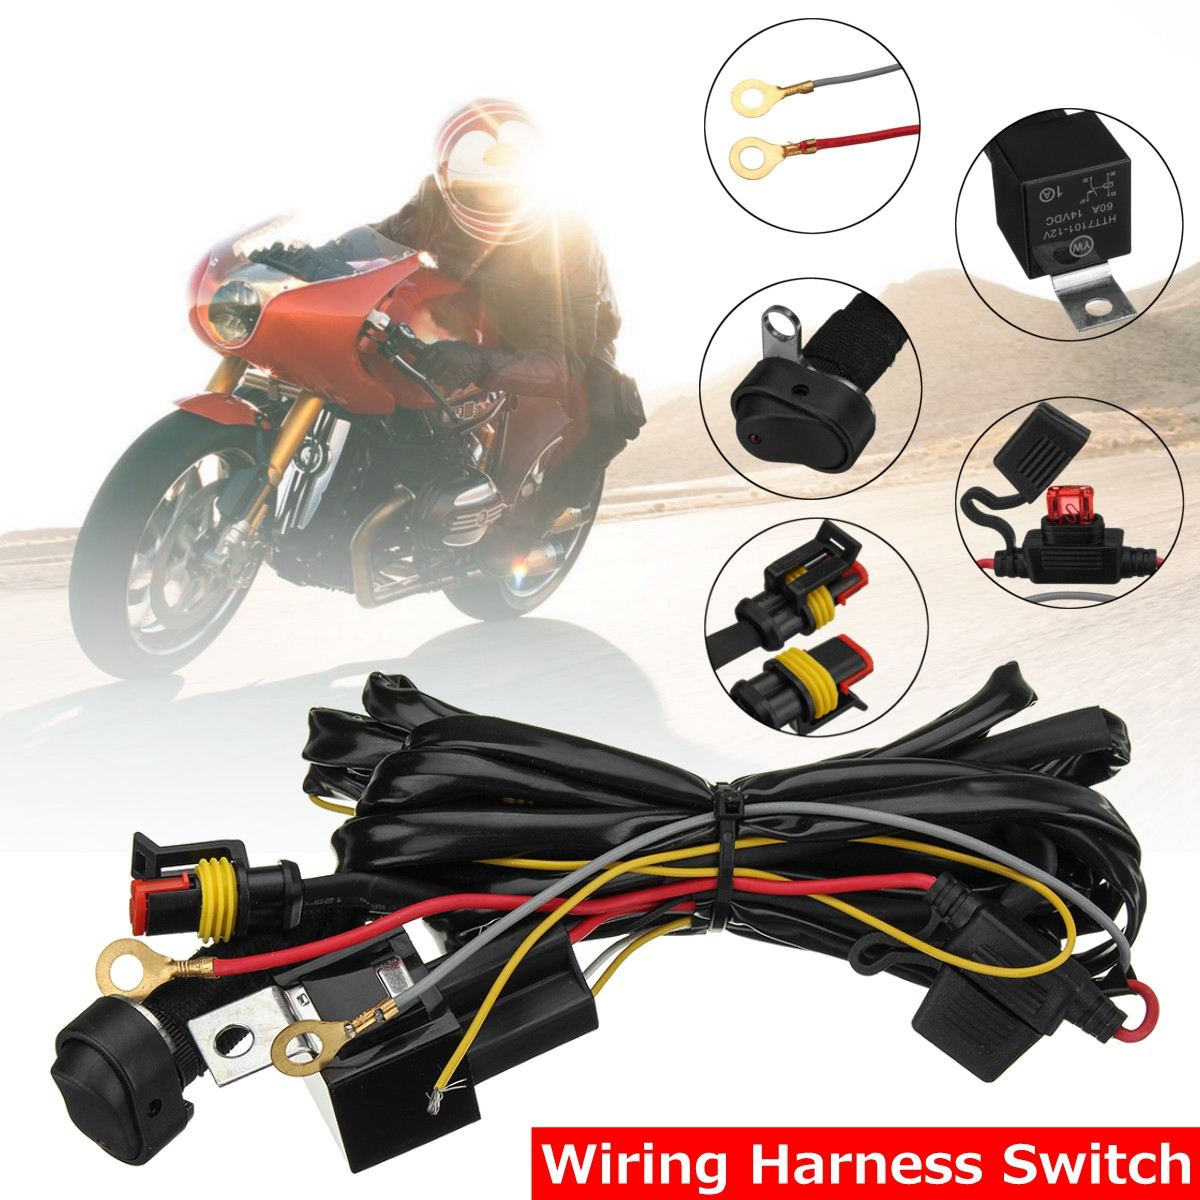 Bmw R1200gs Wiring Harness Diagrams Data Base Jvc Car Stereo Power Plug Motorcycle Led Fog Lights Switch On Off 40a For Rh Aliexpress Com